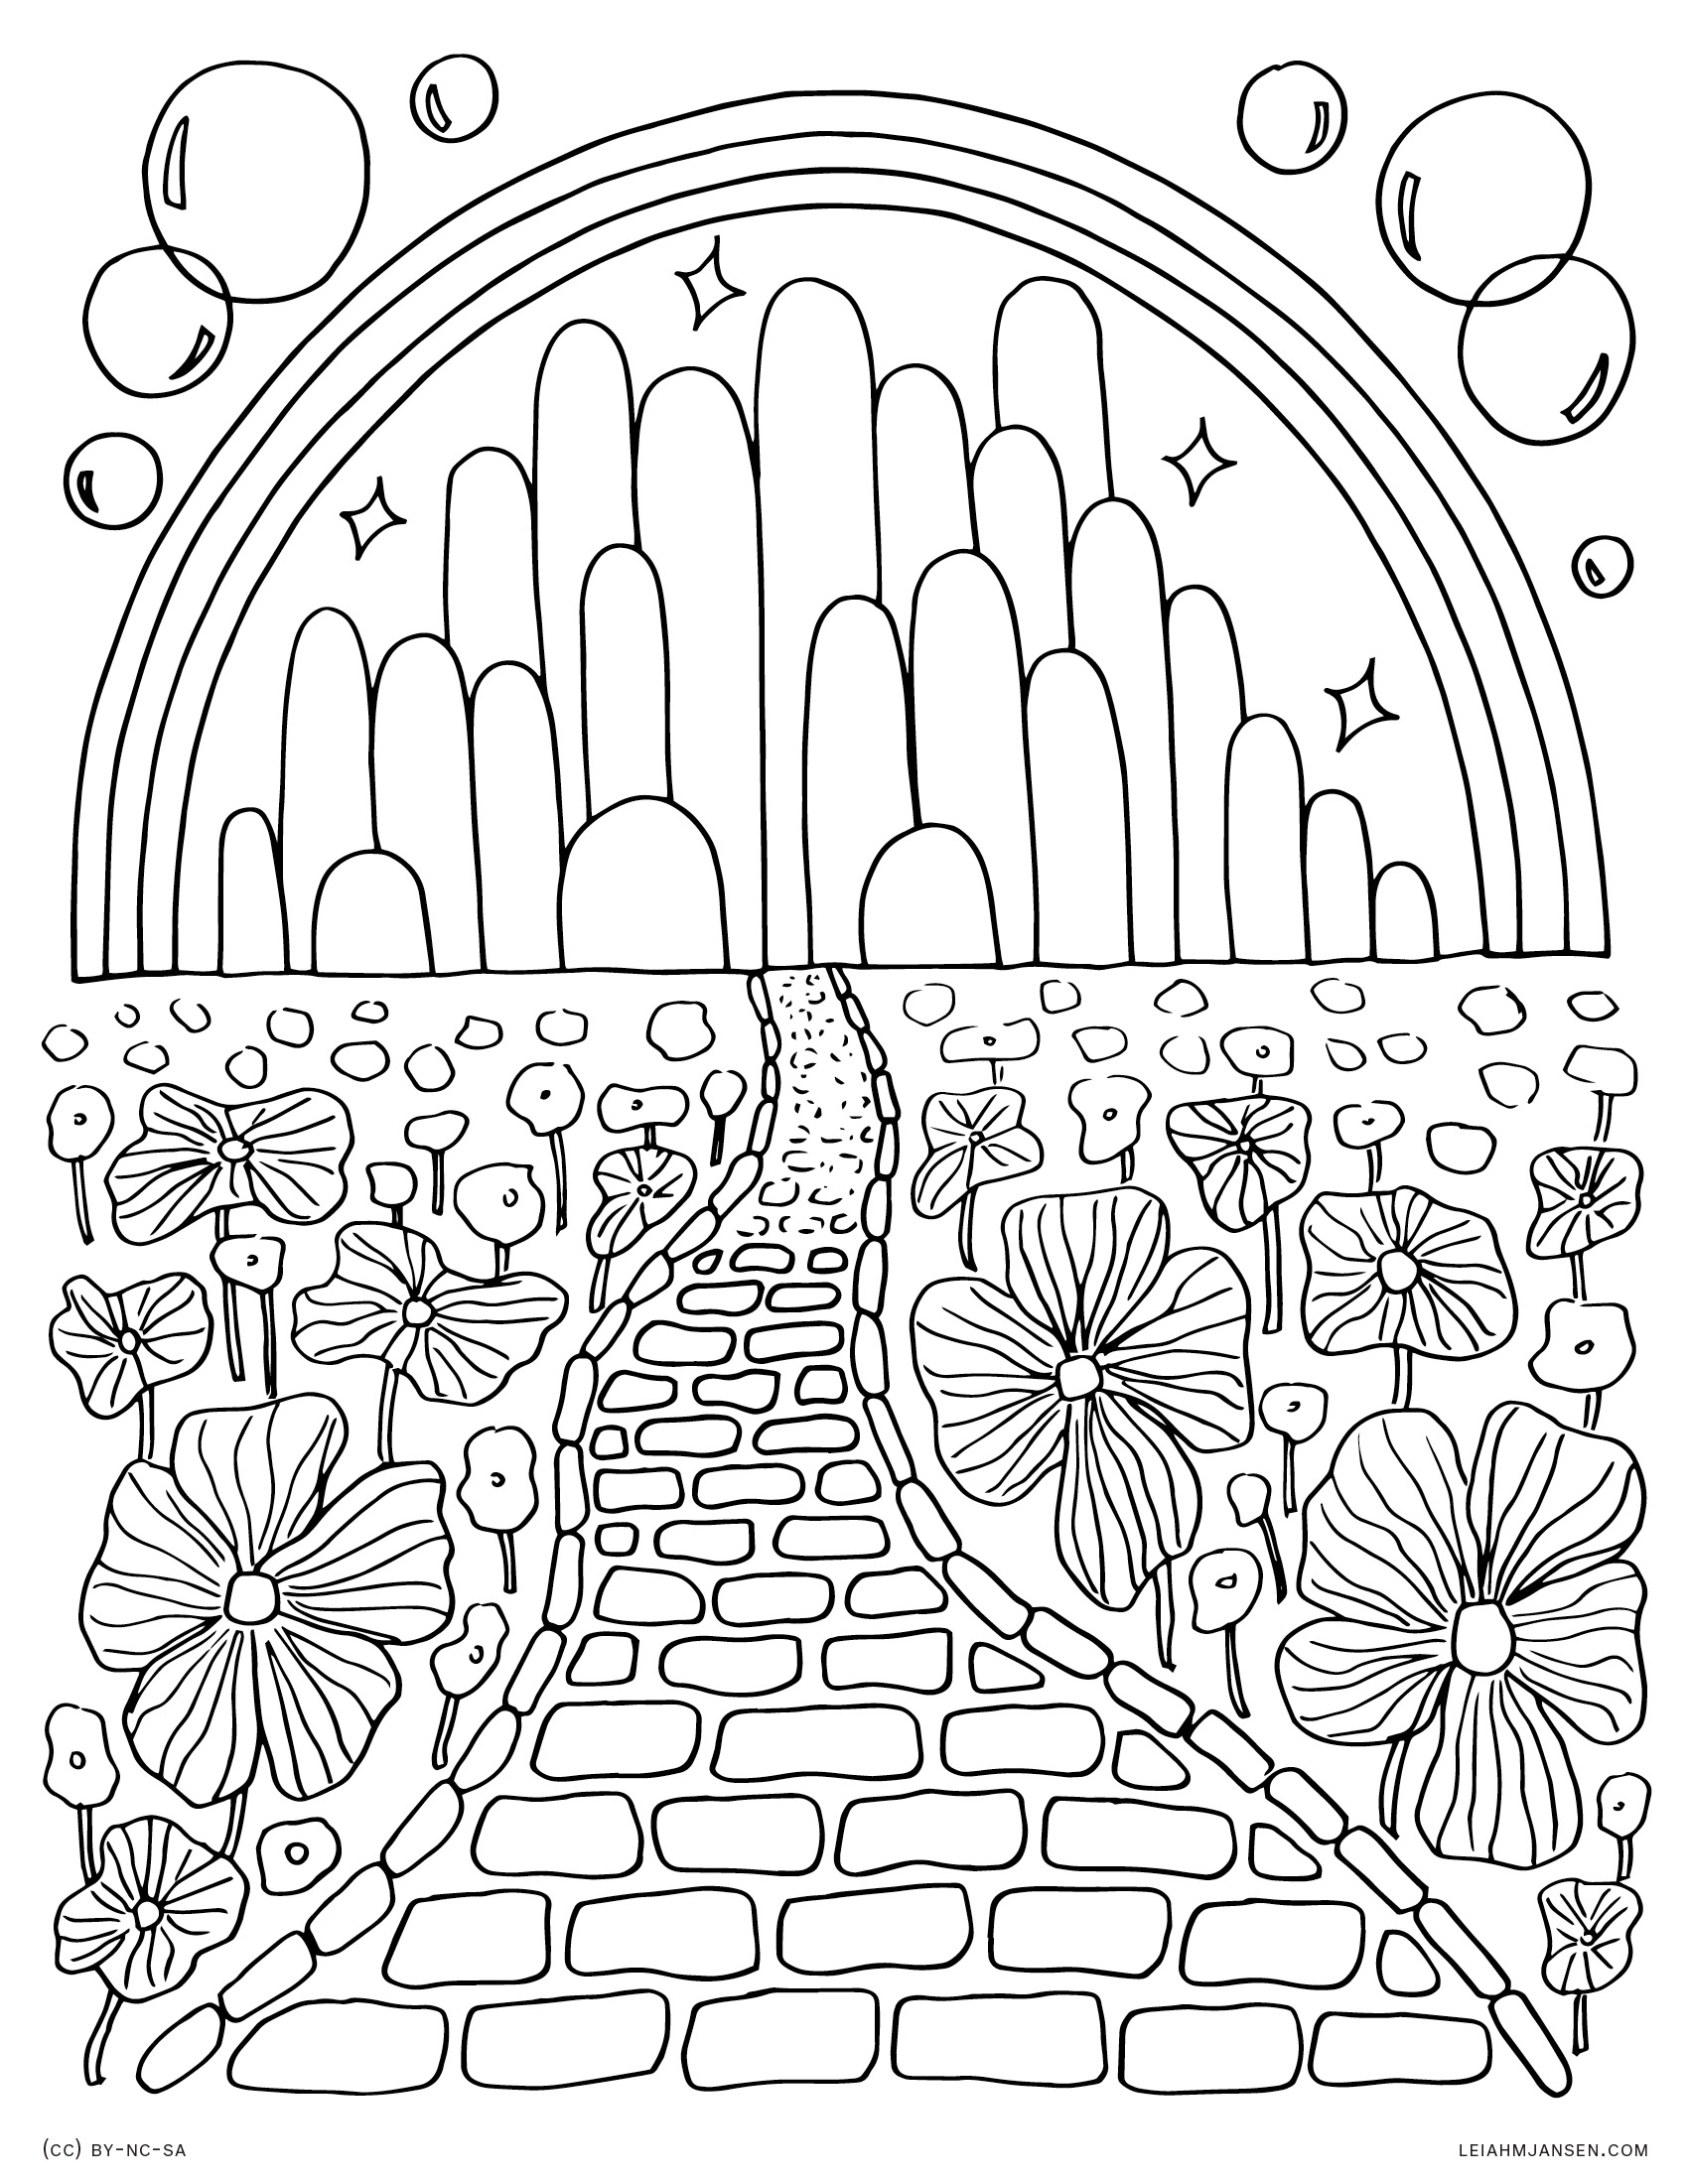 Emerald city coloring sheets murderthestout for Printable wizard of oz coloring pages